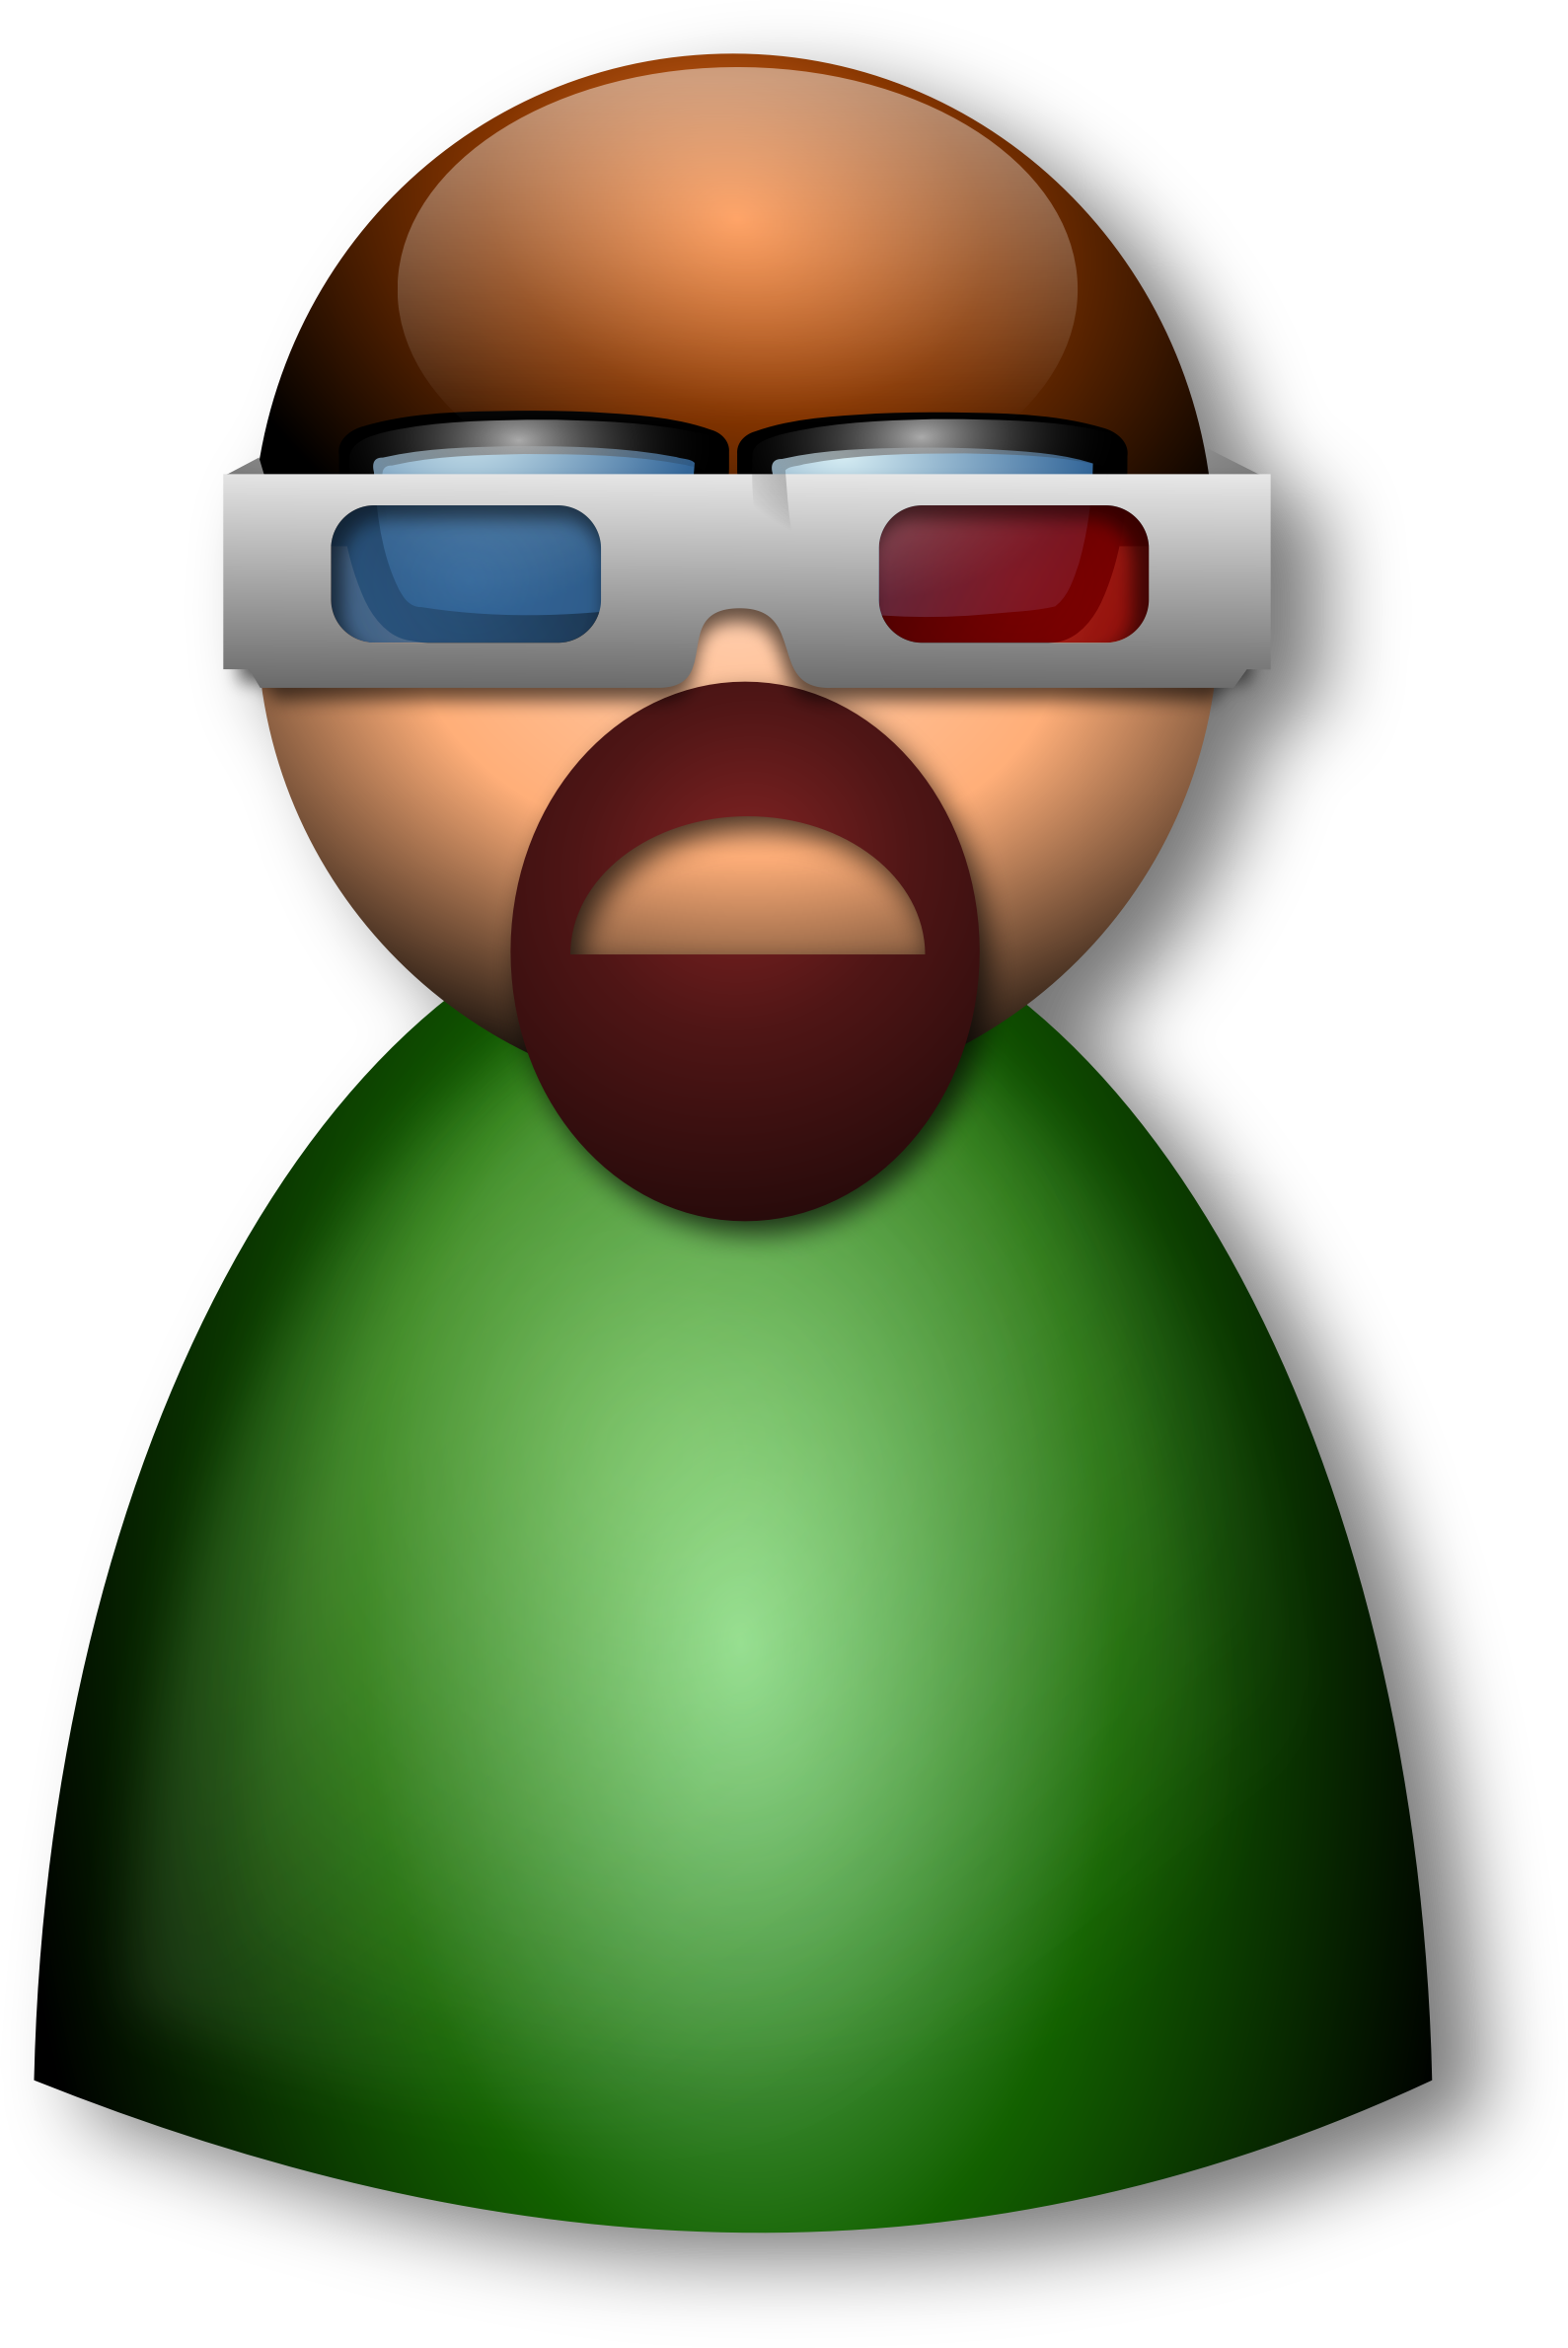 3d Glasses 4 by Merlin2525